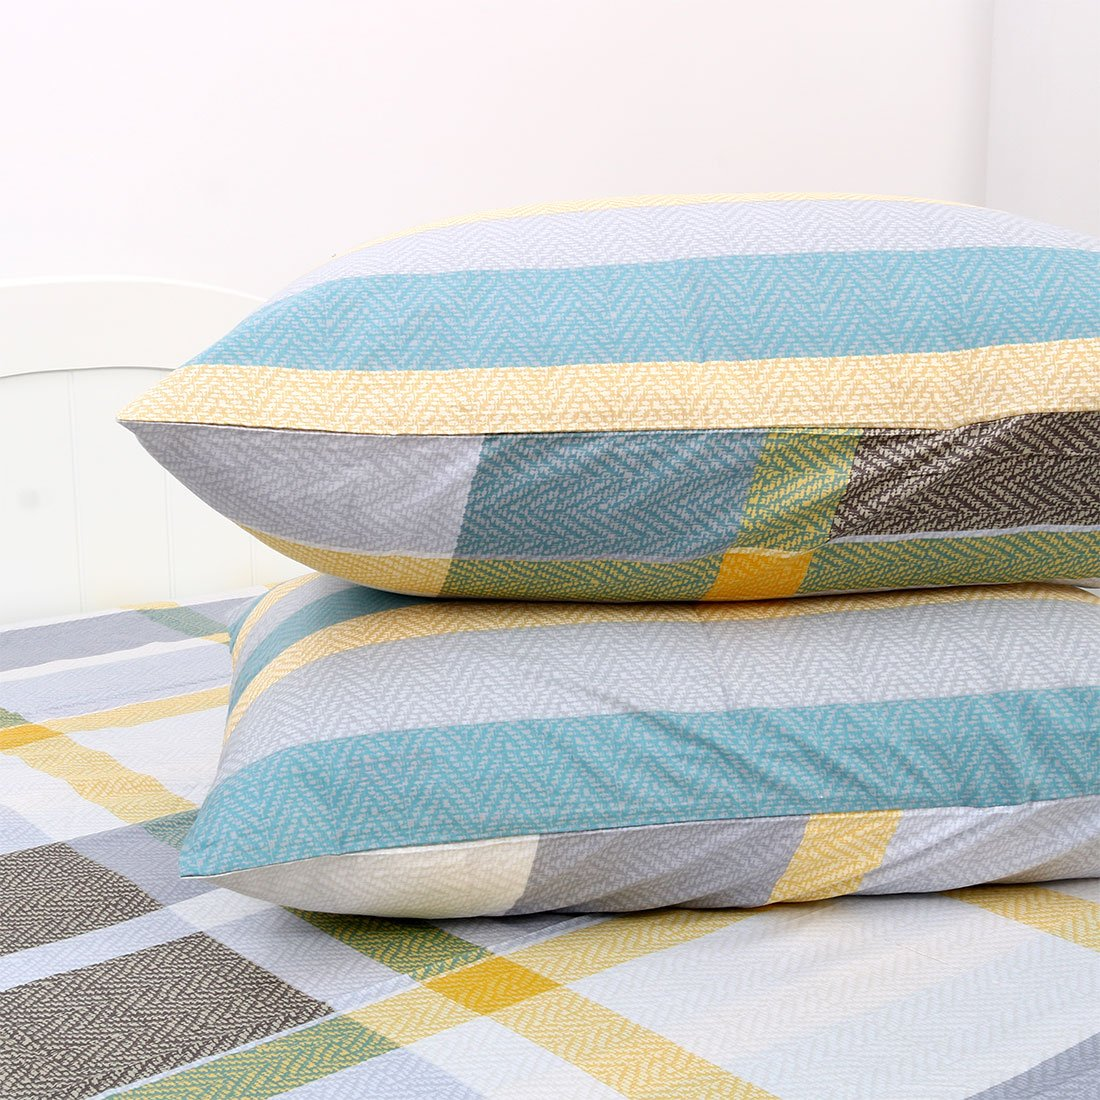 Uxcell Bed Sheets Set,100% Cotton 4 Piece Checkered Bedding Sets Fitted  Sheet Flat Sheet ...